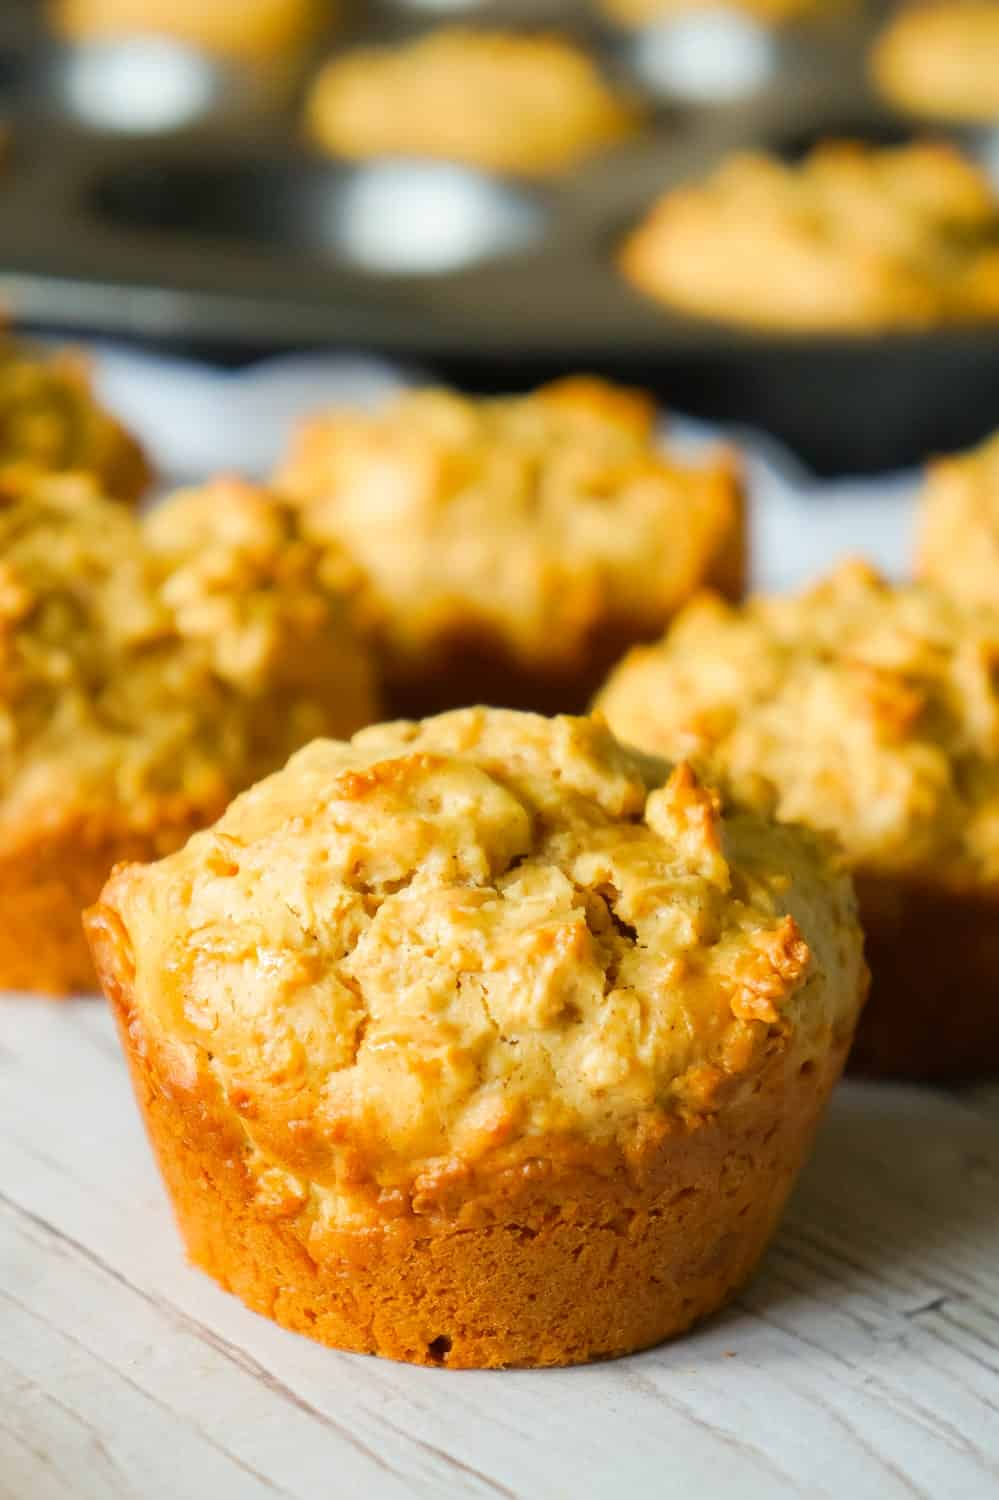 Pumpkin Spice Peanut Butter Oatmeal Muffins are a delicious fall treat loaded with pumpkin pie spice, smooth peanut butter and Reese's peanut butter baking chips.